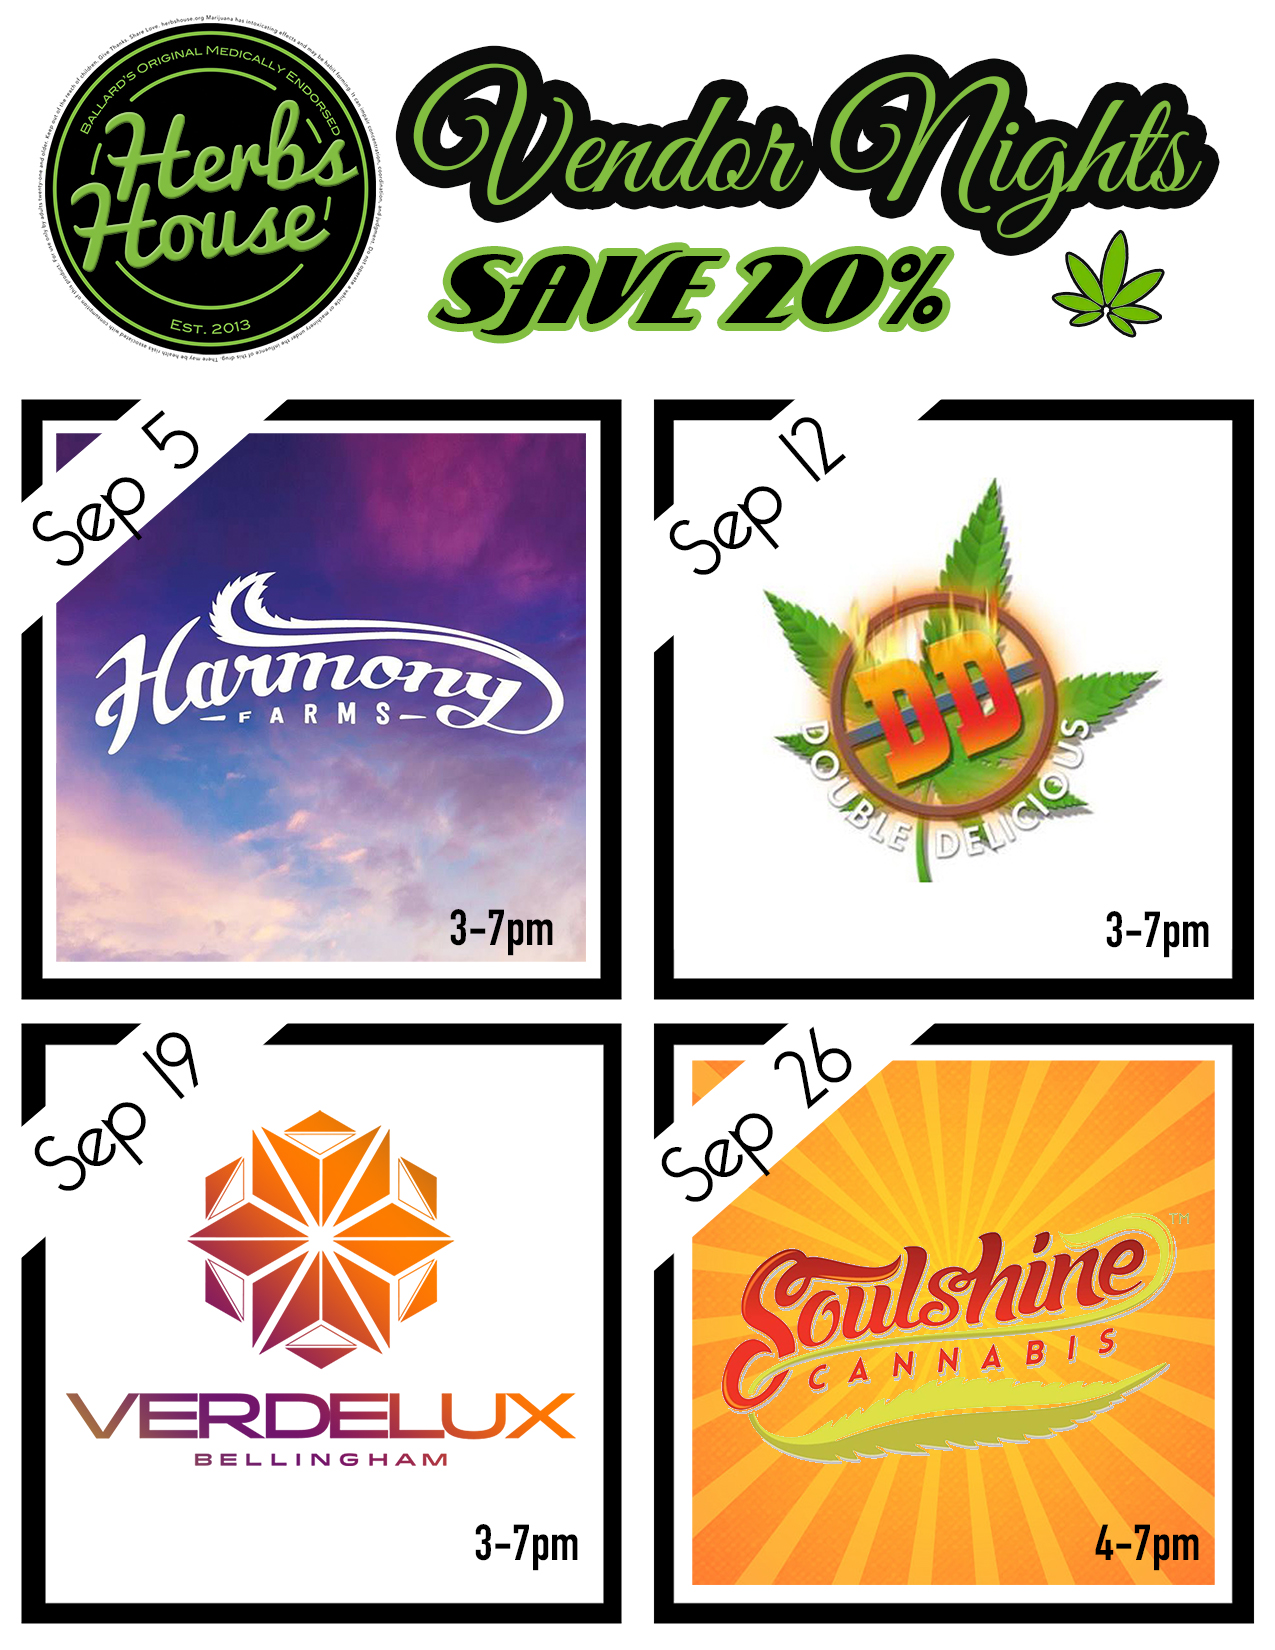 Vendor Nights at Herbs House Sept 2019